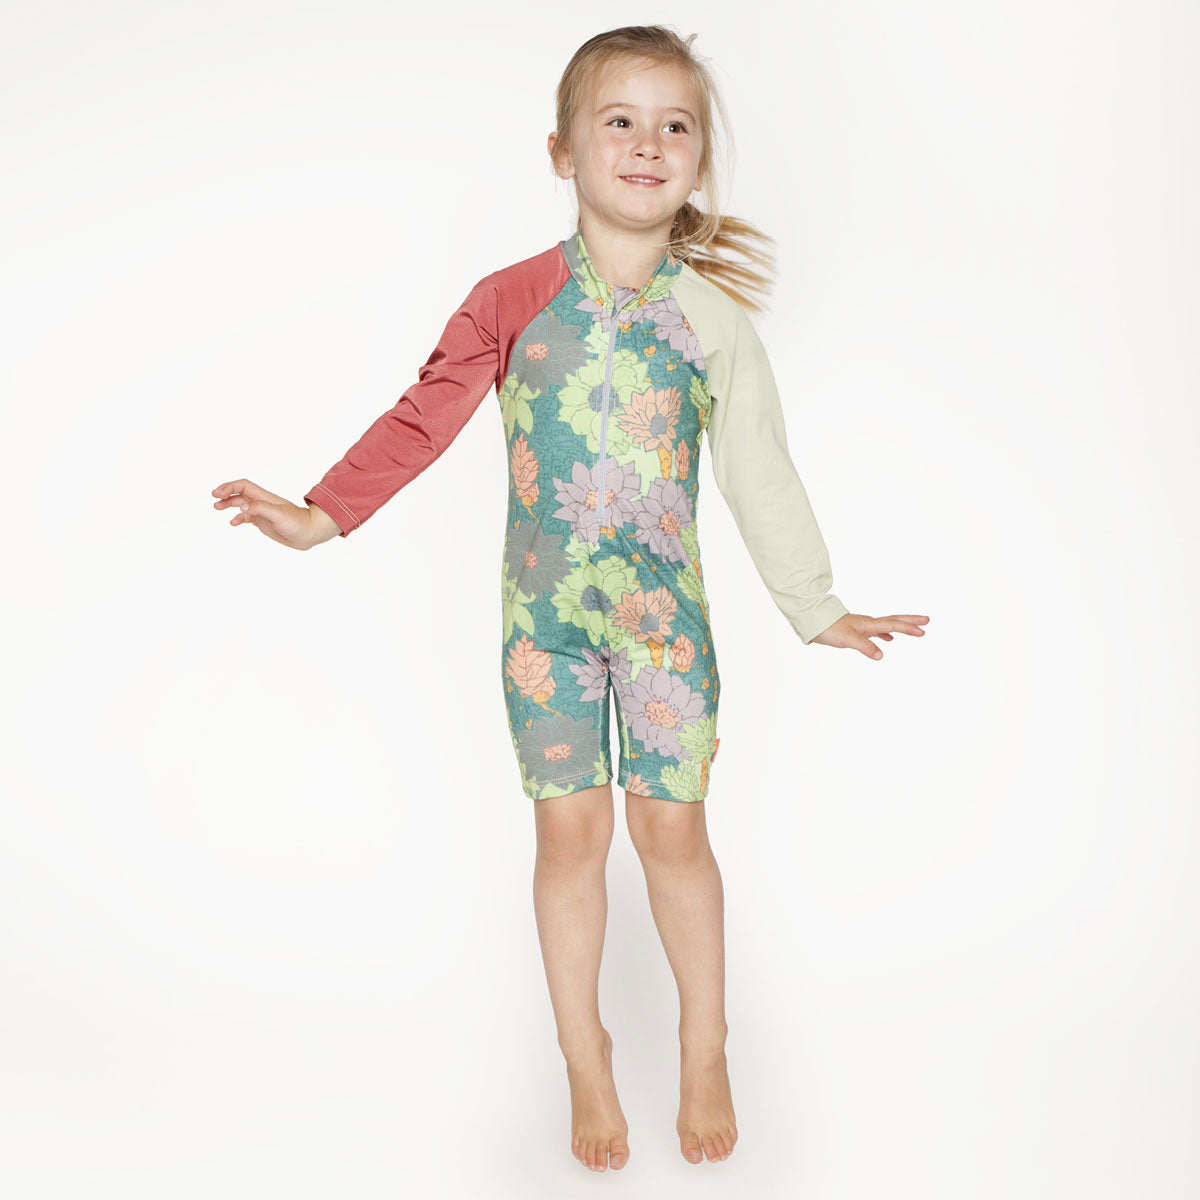 Swamini Kids Sunsuit - Mirage